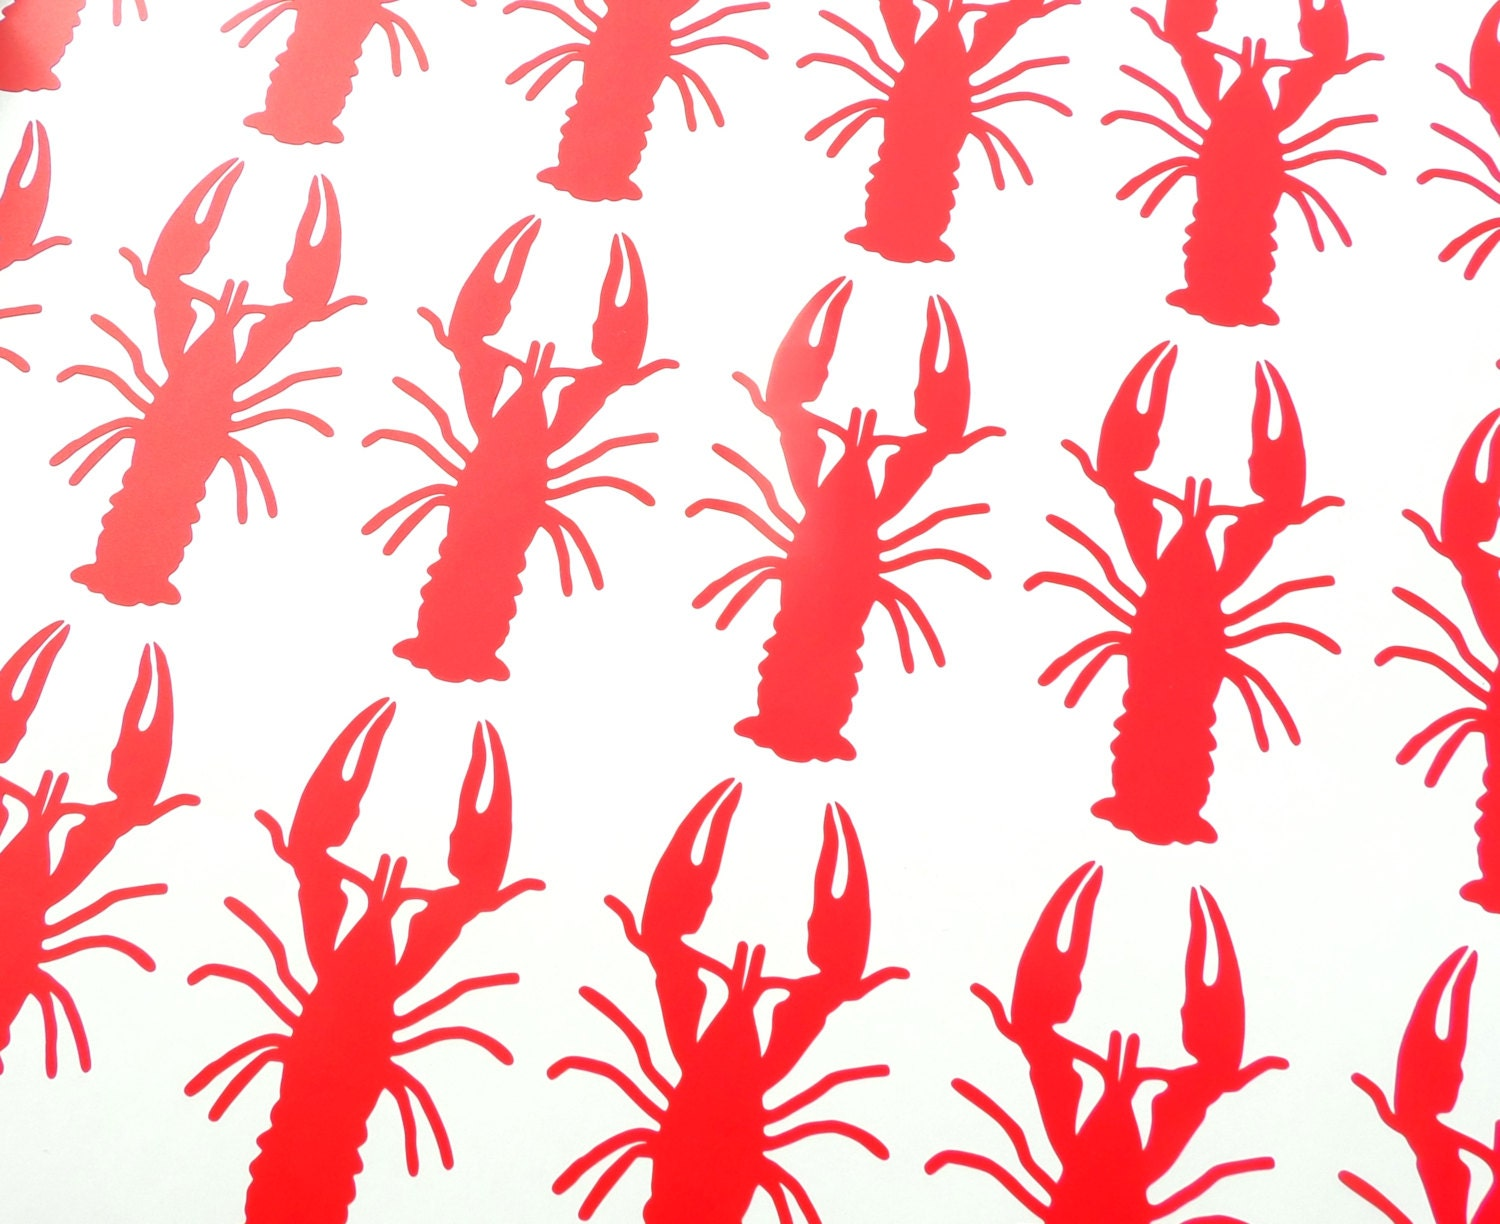 30 vinyl crawfish stickers, crawfish decals, under the sea party, removable wallpaper, lobster ...